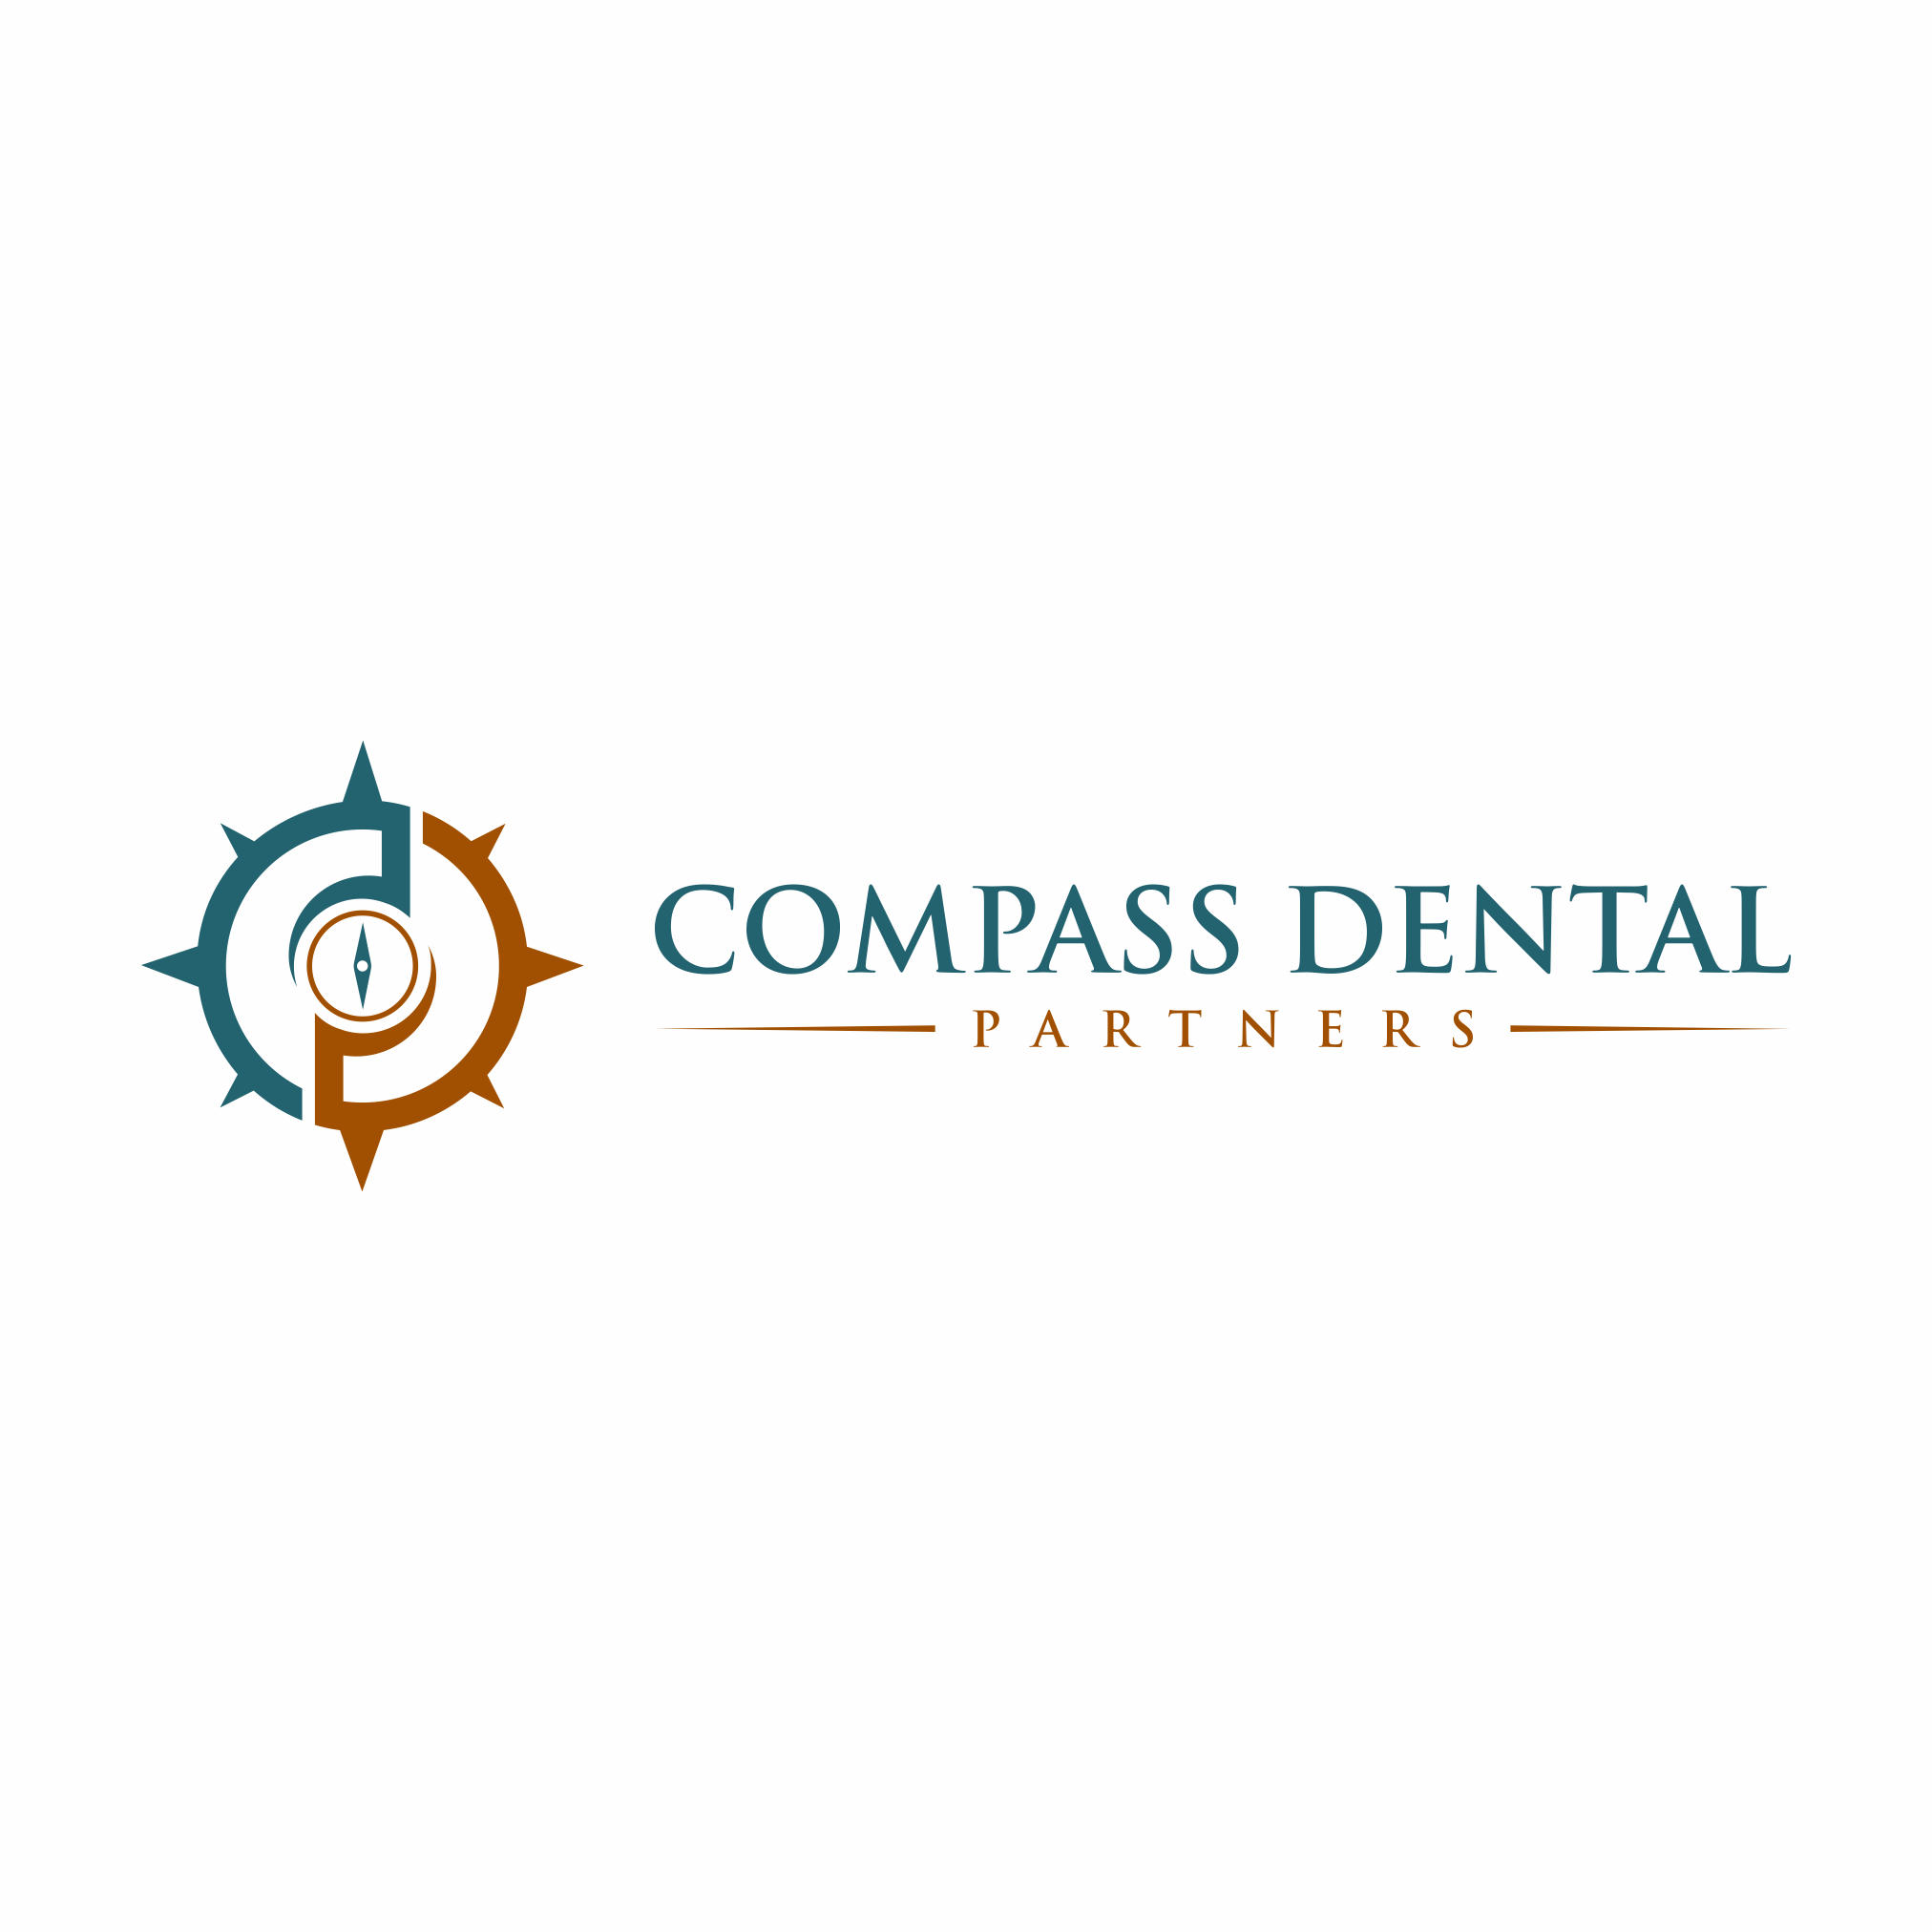 Help compass dental partners become a leading DSO in Canada